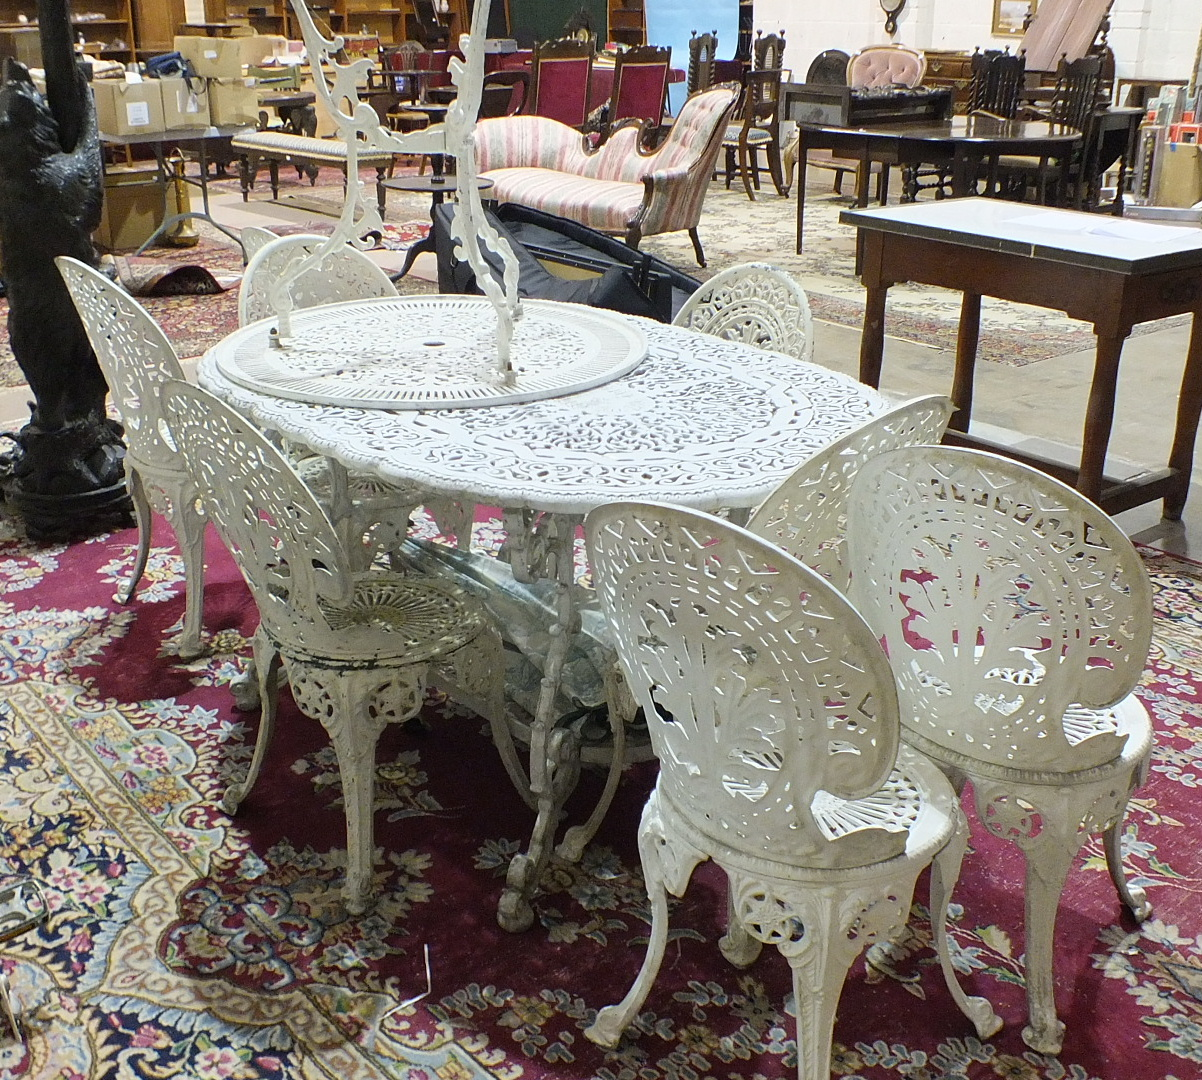 A painted metal garden-table of pierced foliate design, 140cm long, together with eight chairs and a - Image 2 of 2